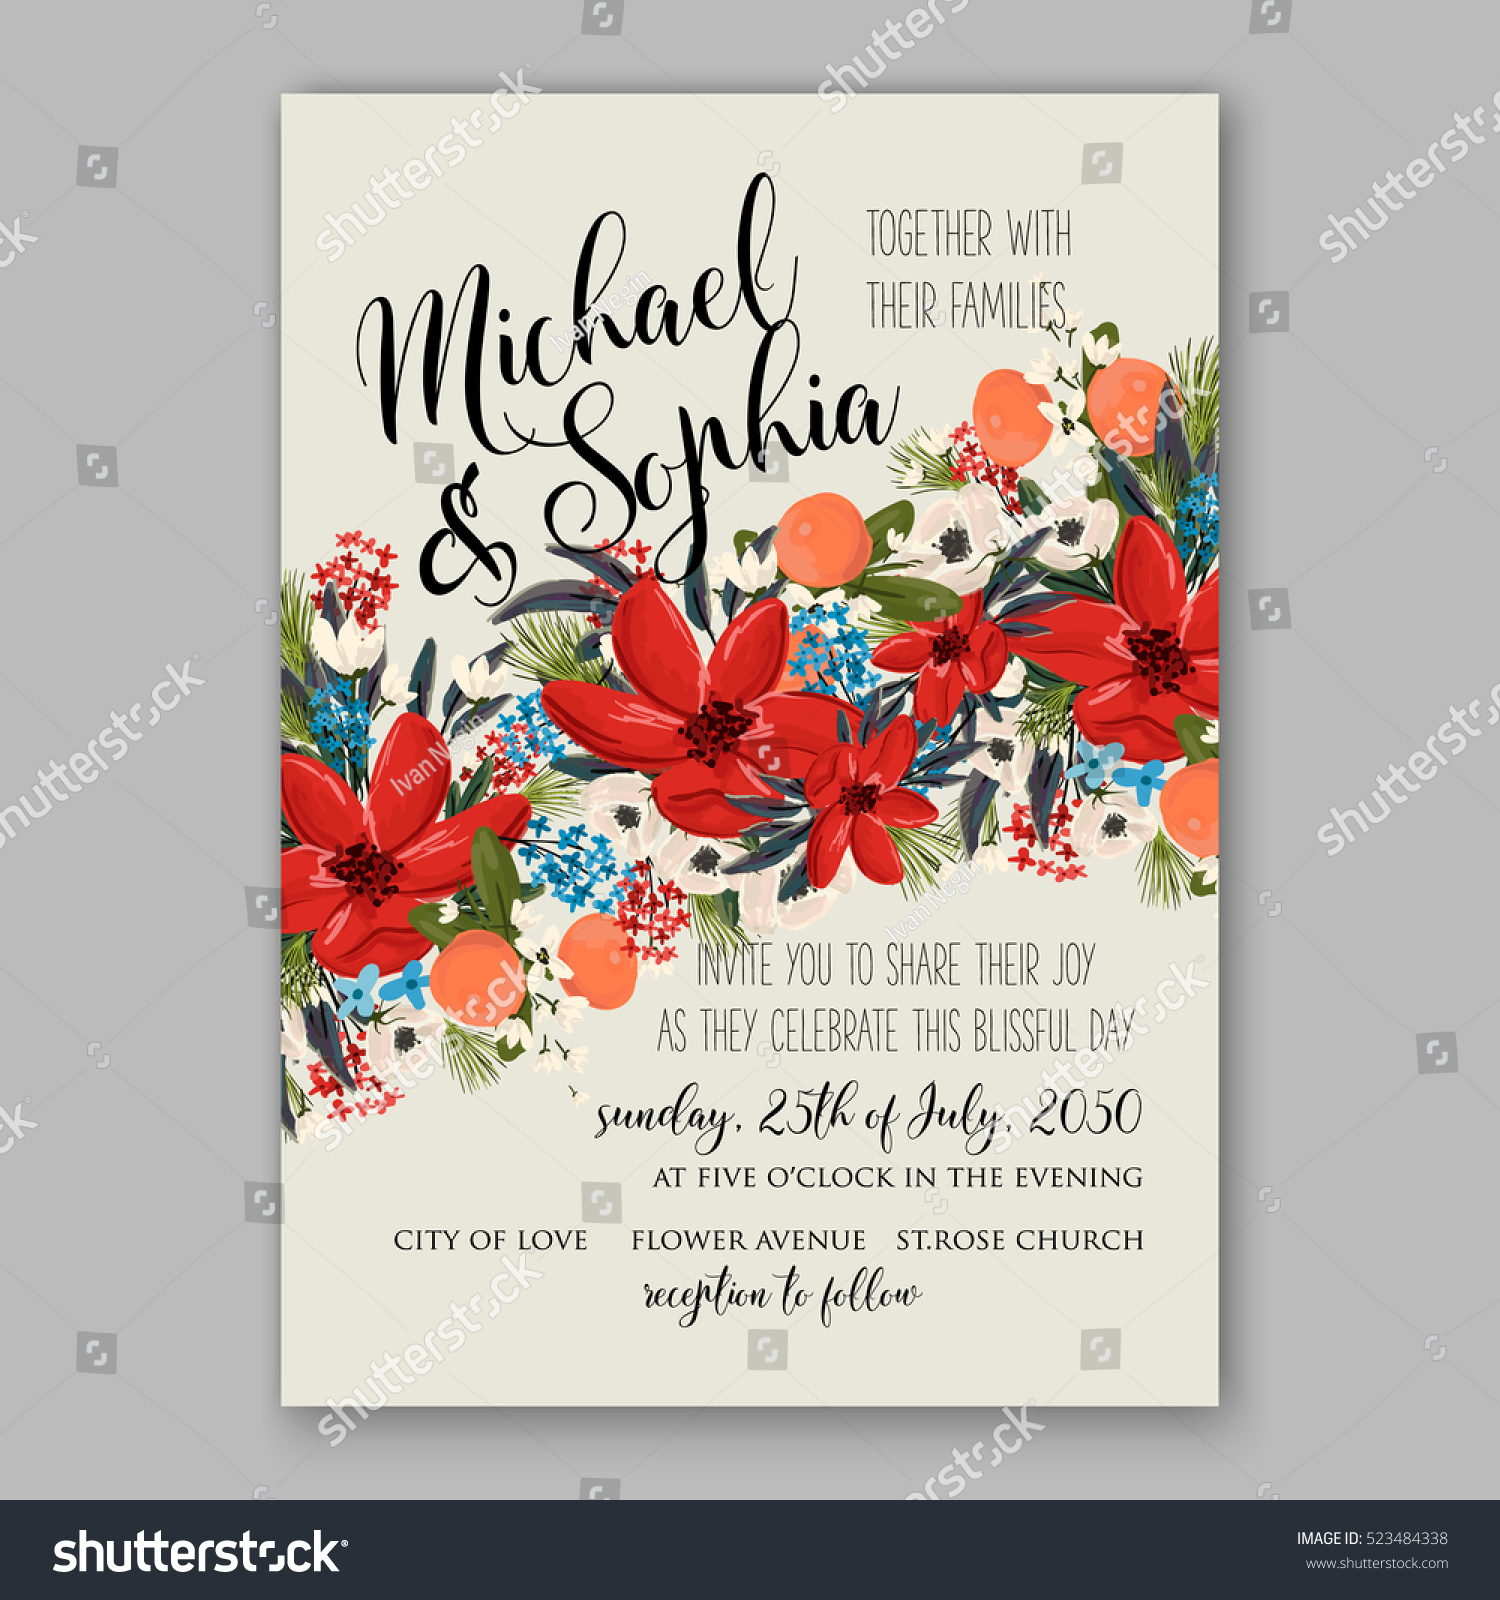 Poinsettia Winter Wedding Invitation Template Card Stock Vector ...